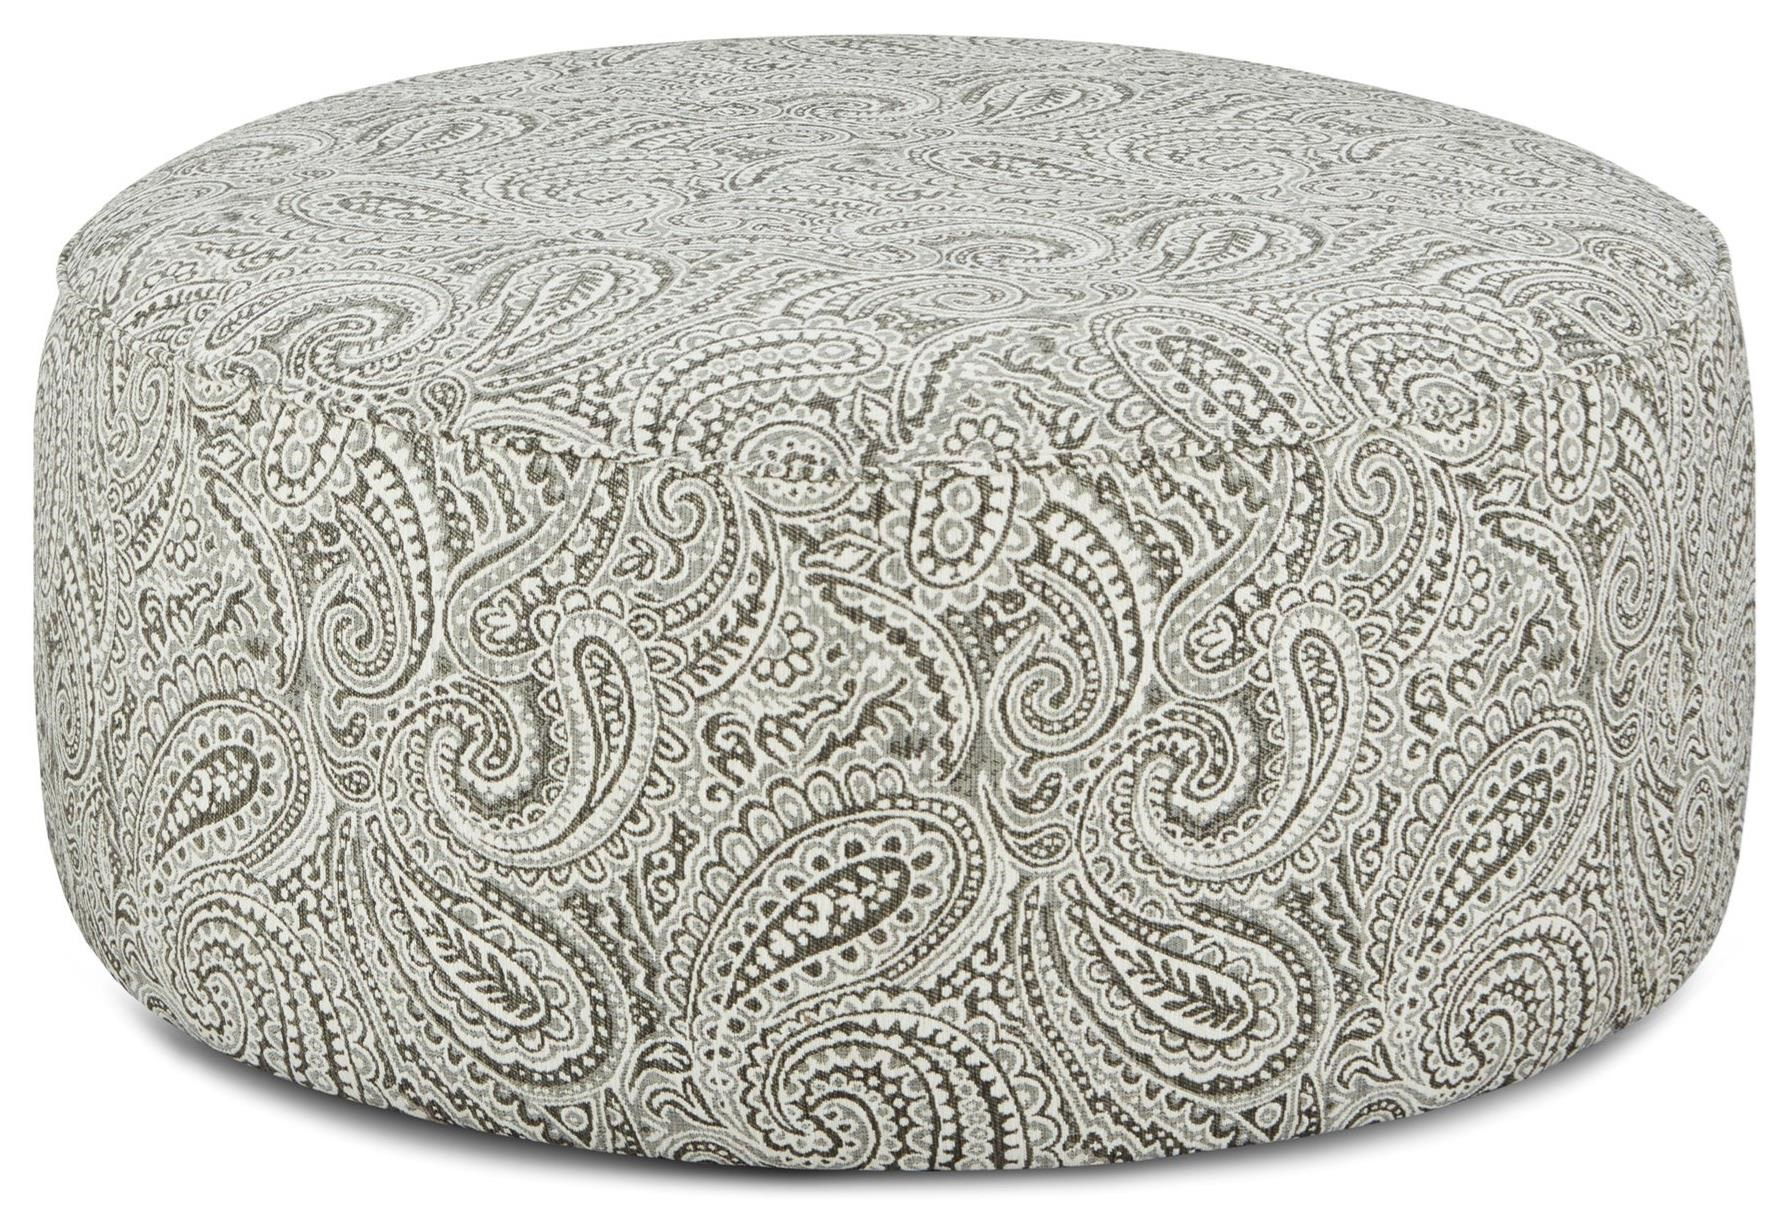 140 Cocktail Ottoman by Fusion Furniture at Wilson's Furniture